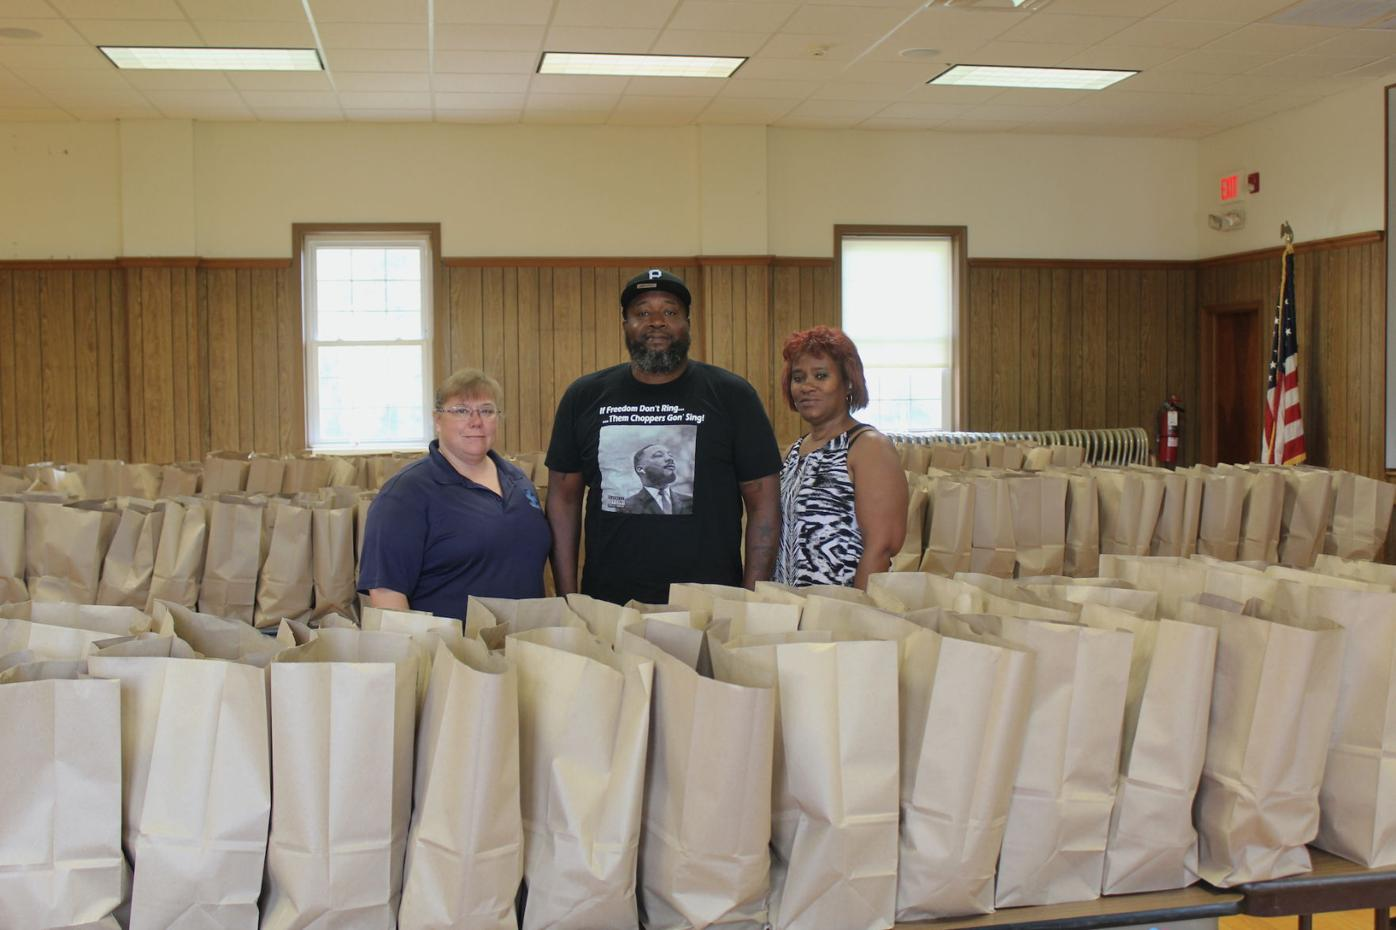 Commissioners approve first use of ARPA funds for feeding initiative